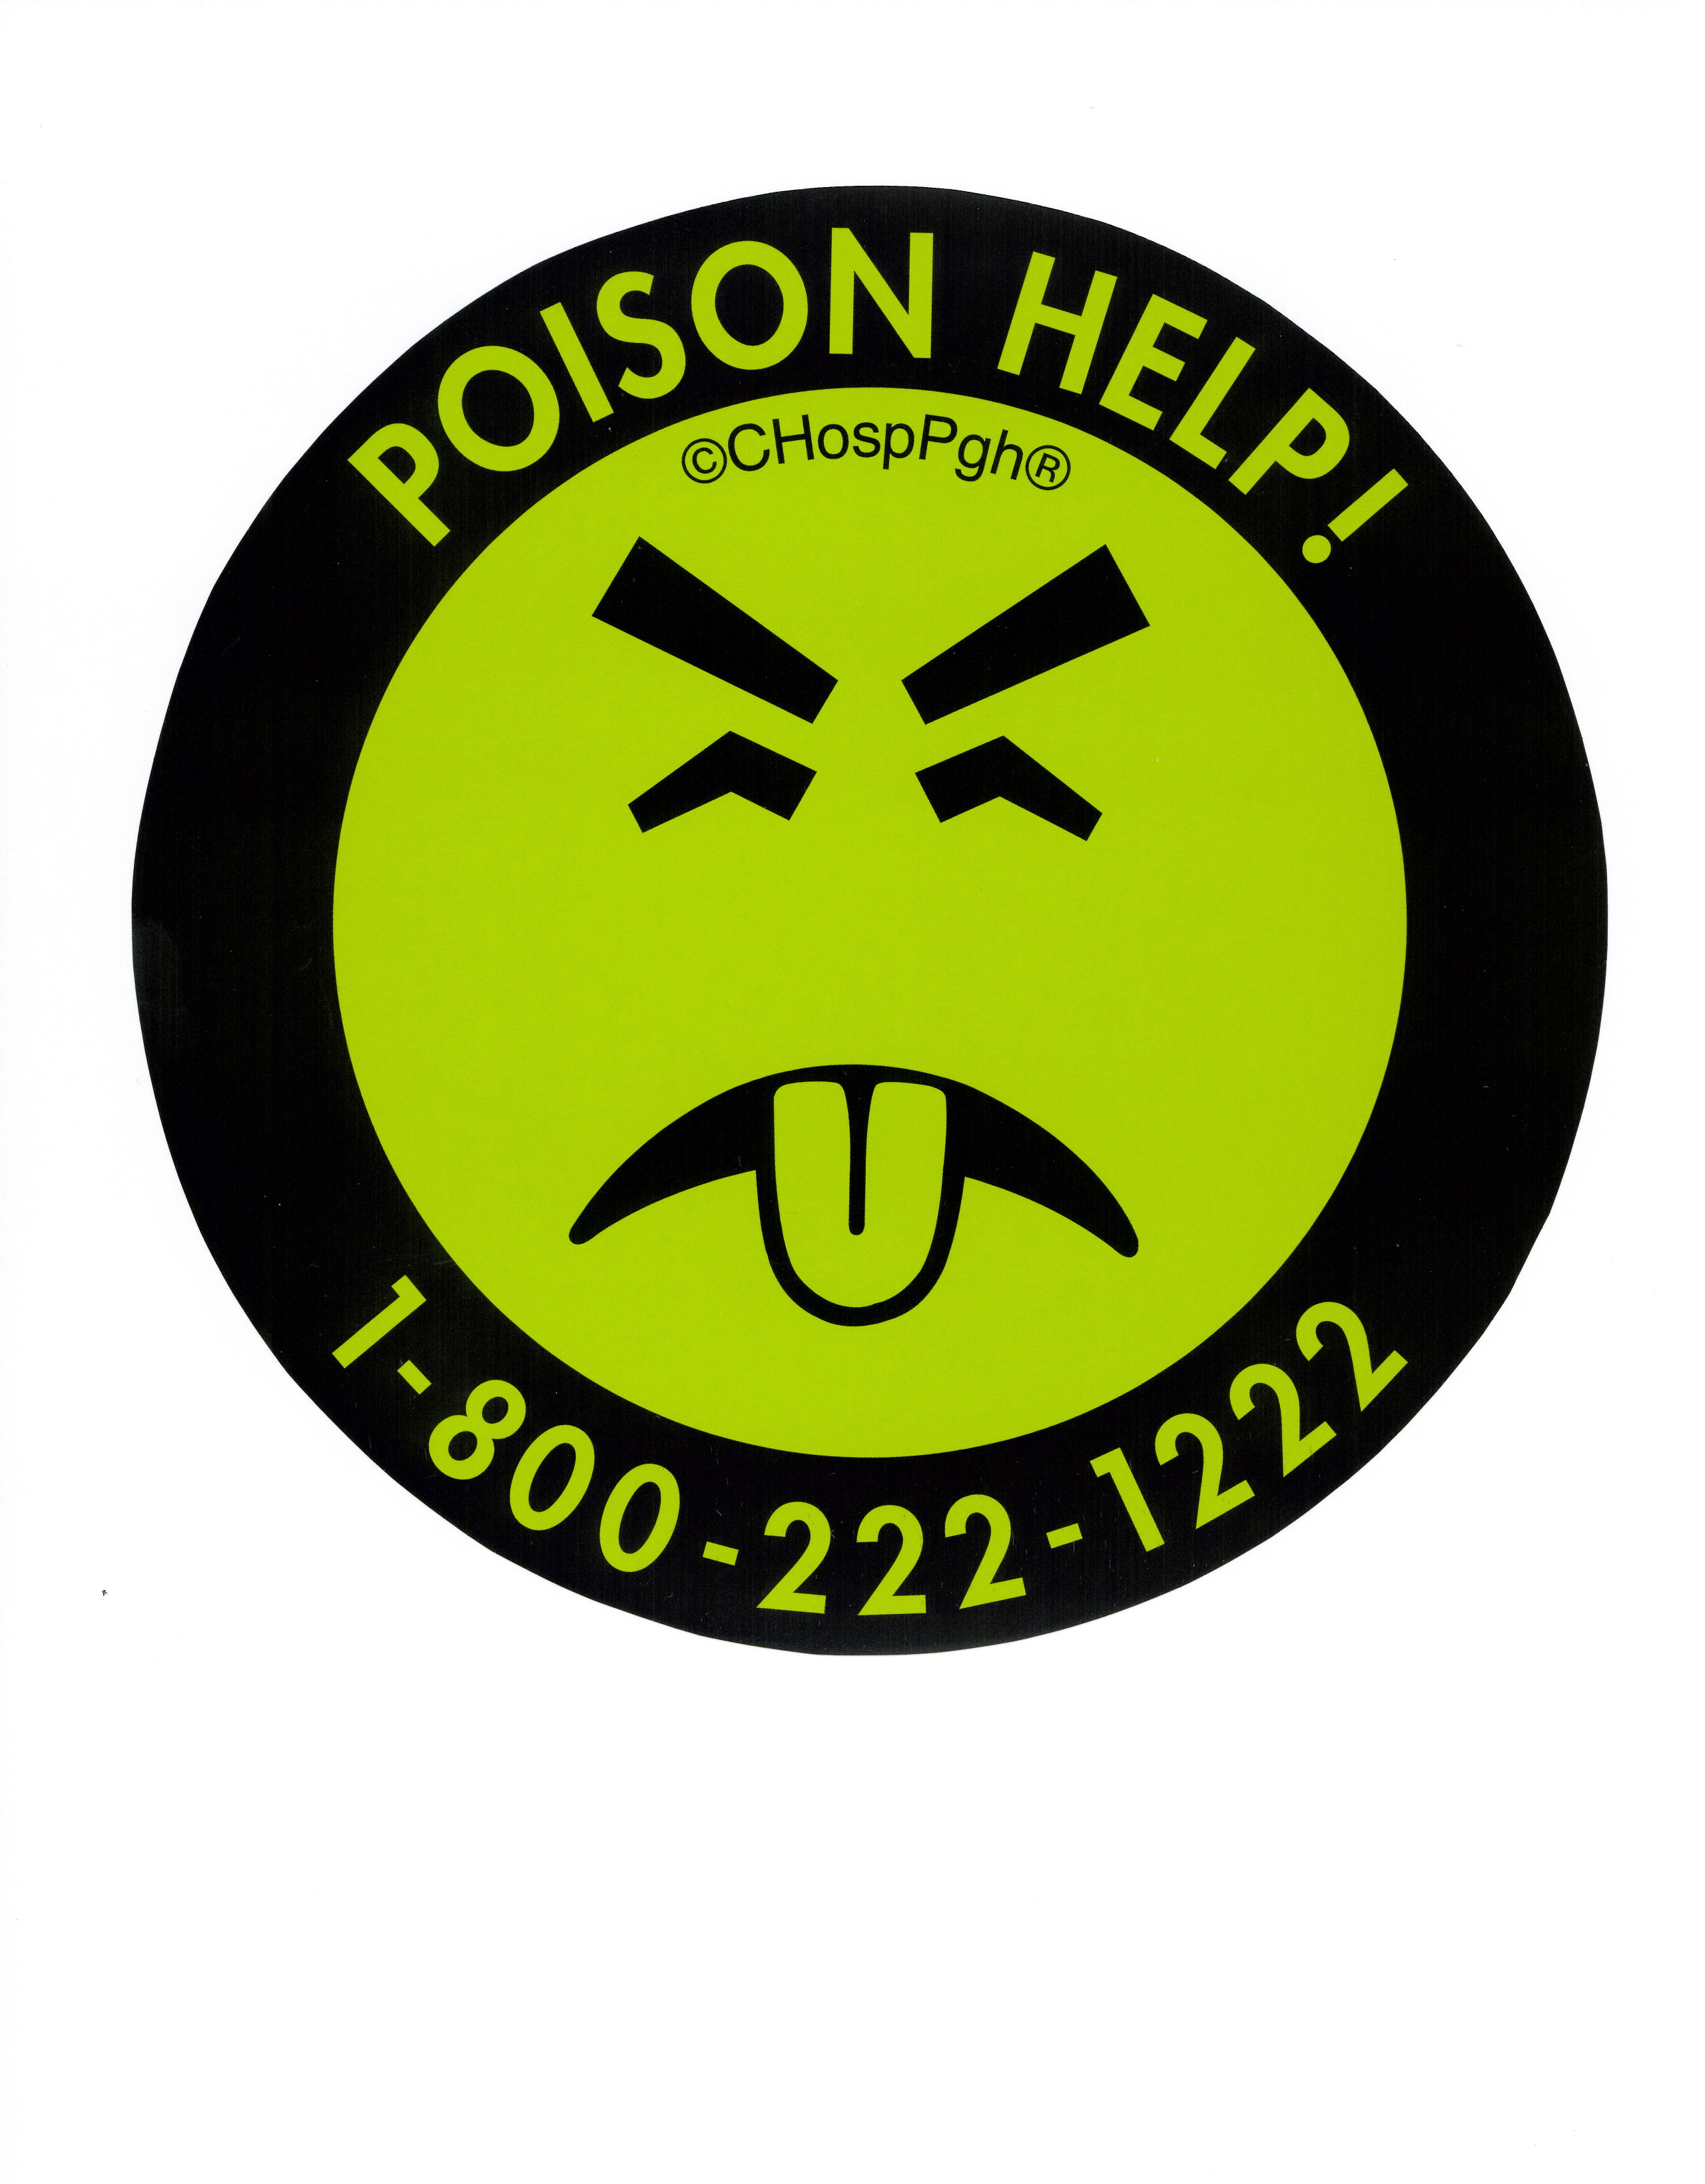 Mr. Yuk image with POISON HELP number, 1-800-222-1222